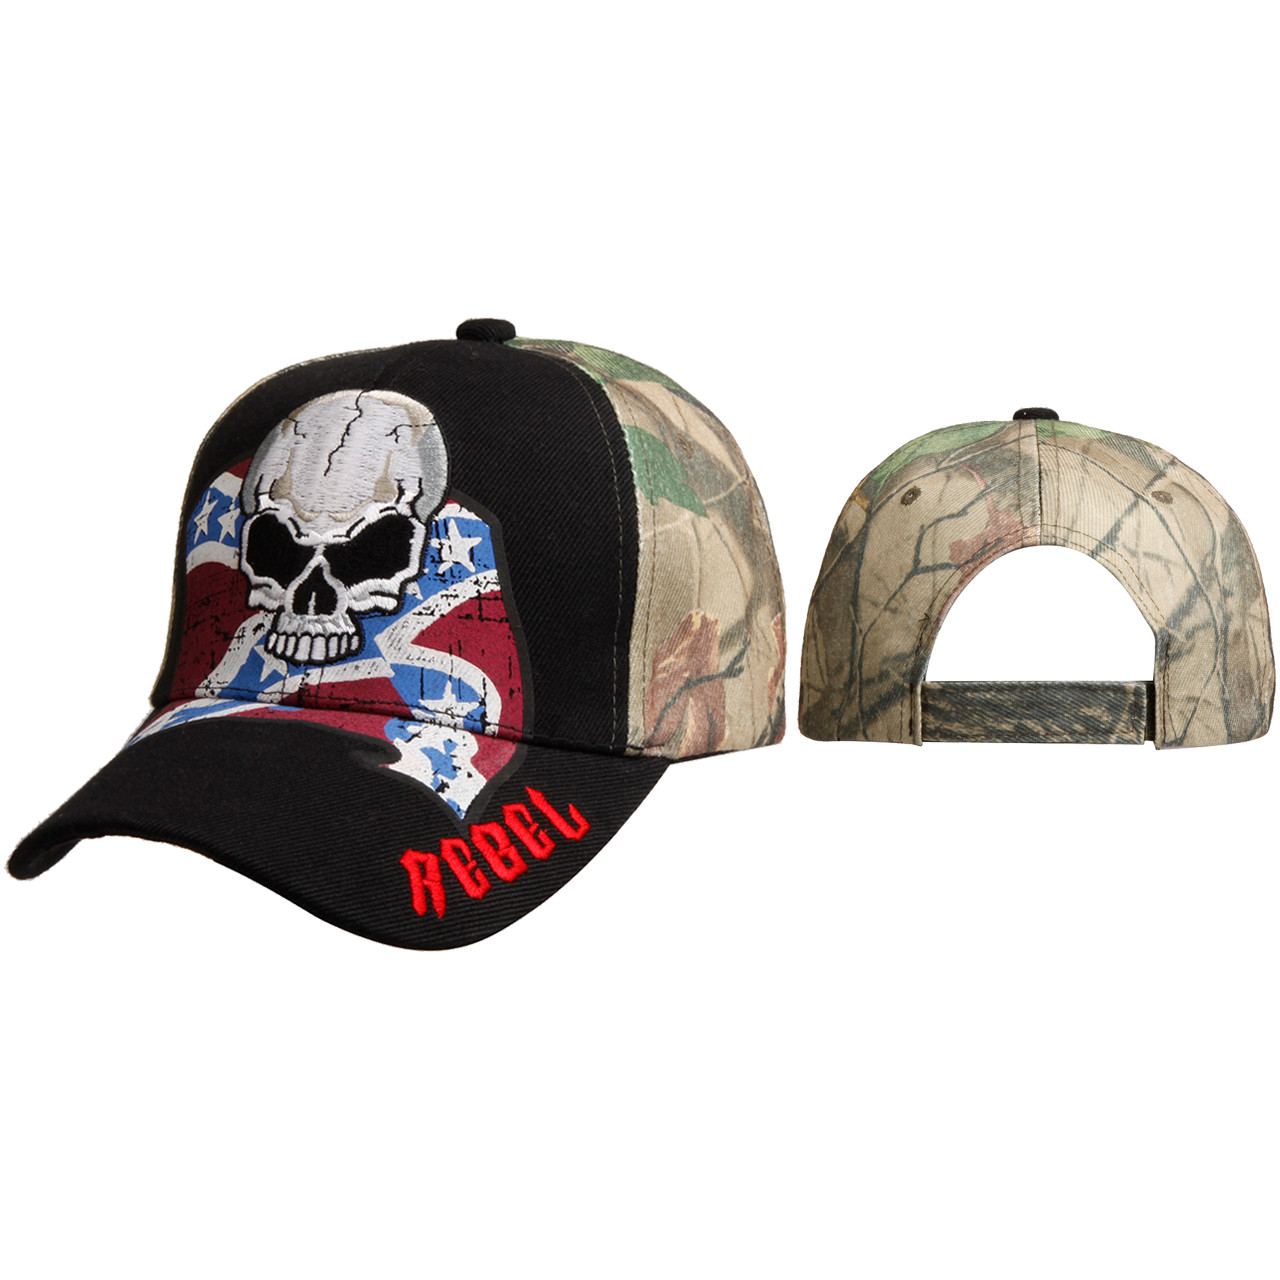 Wholesale Rebel Cap w/Skull C6005